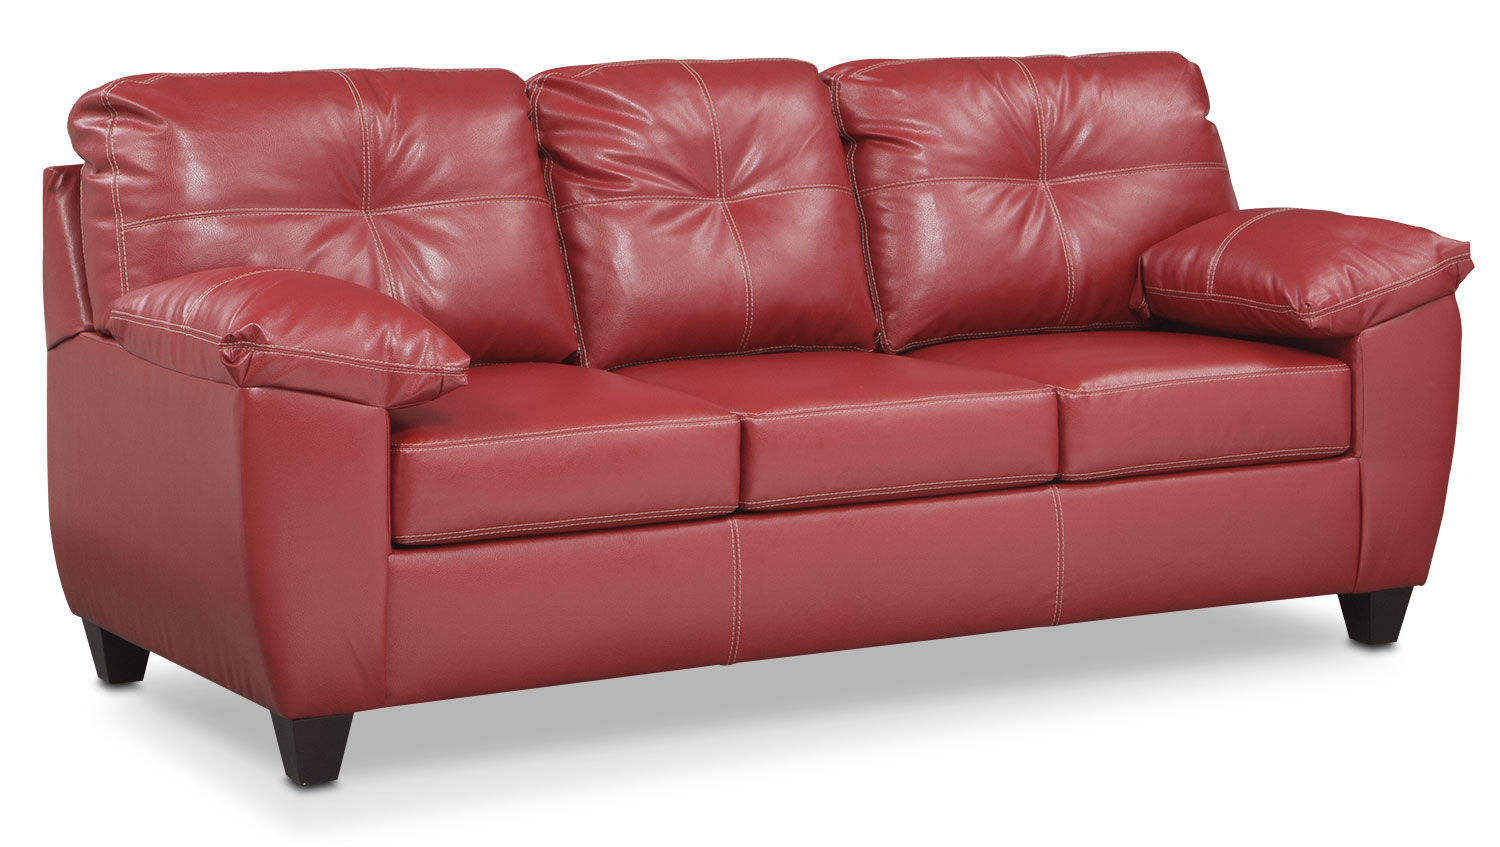 sensational sofa king snl collection-Fascinating sofa King Snl Decoration